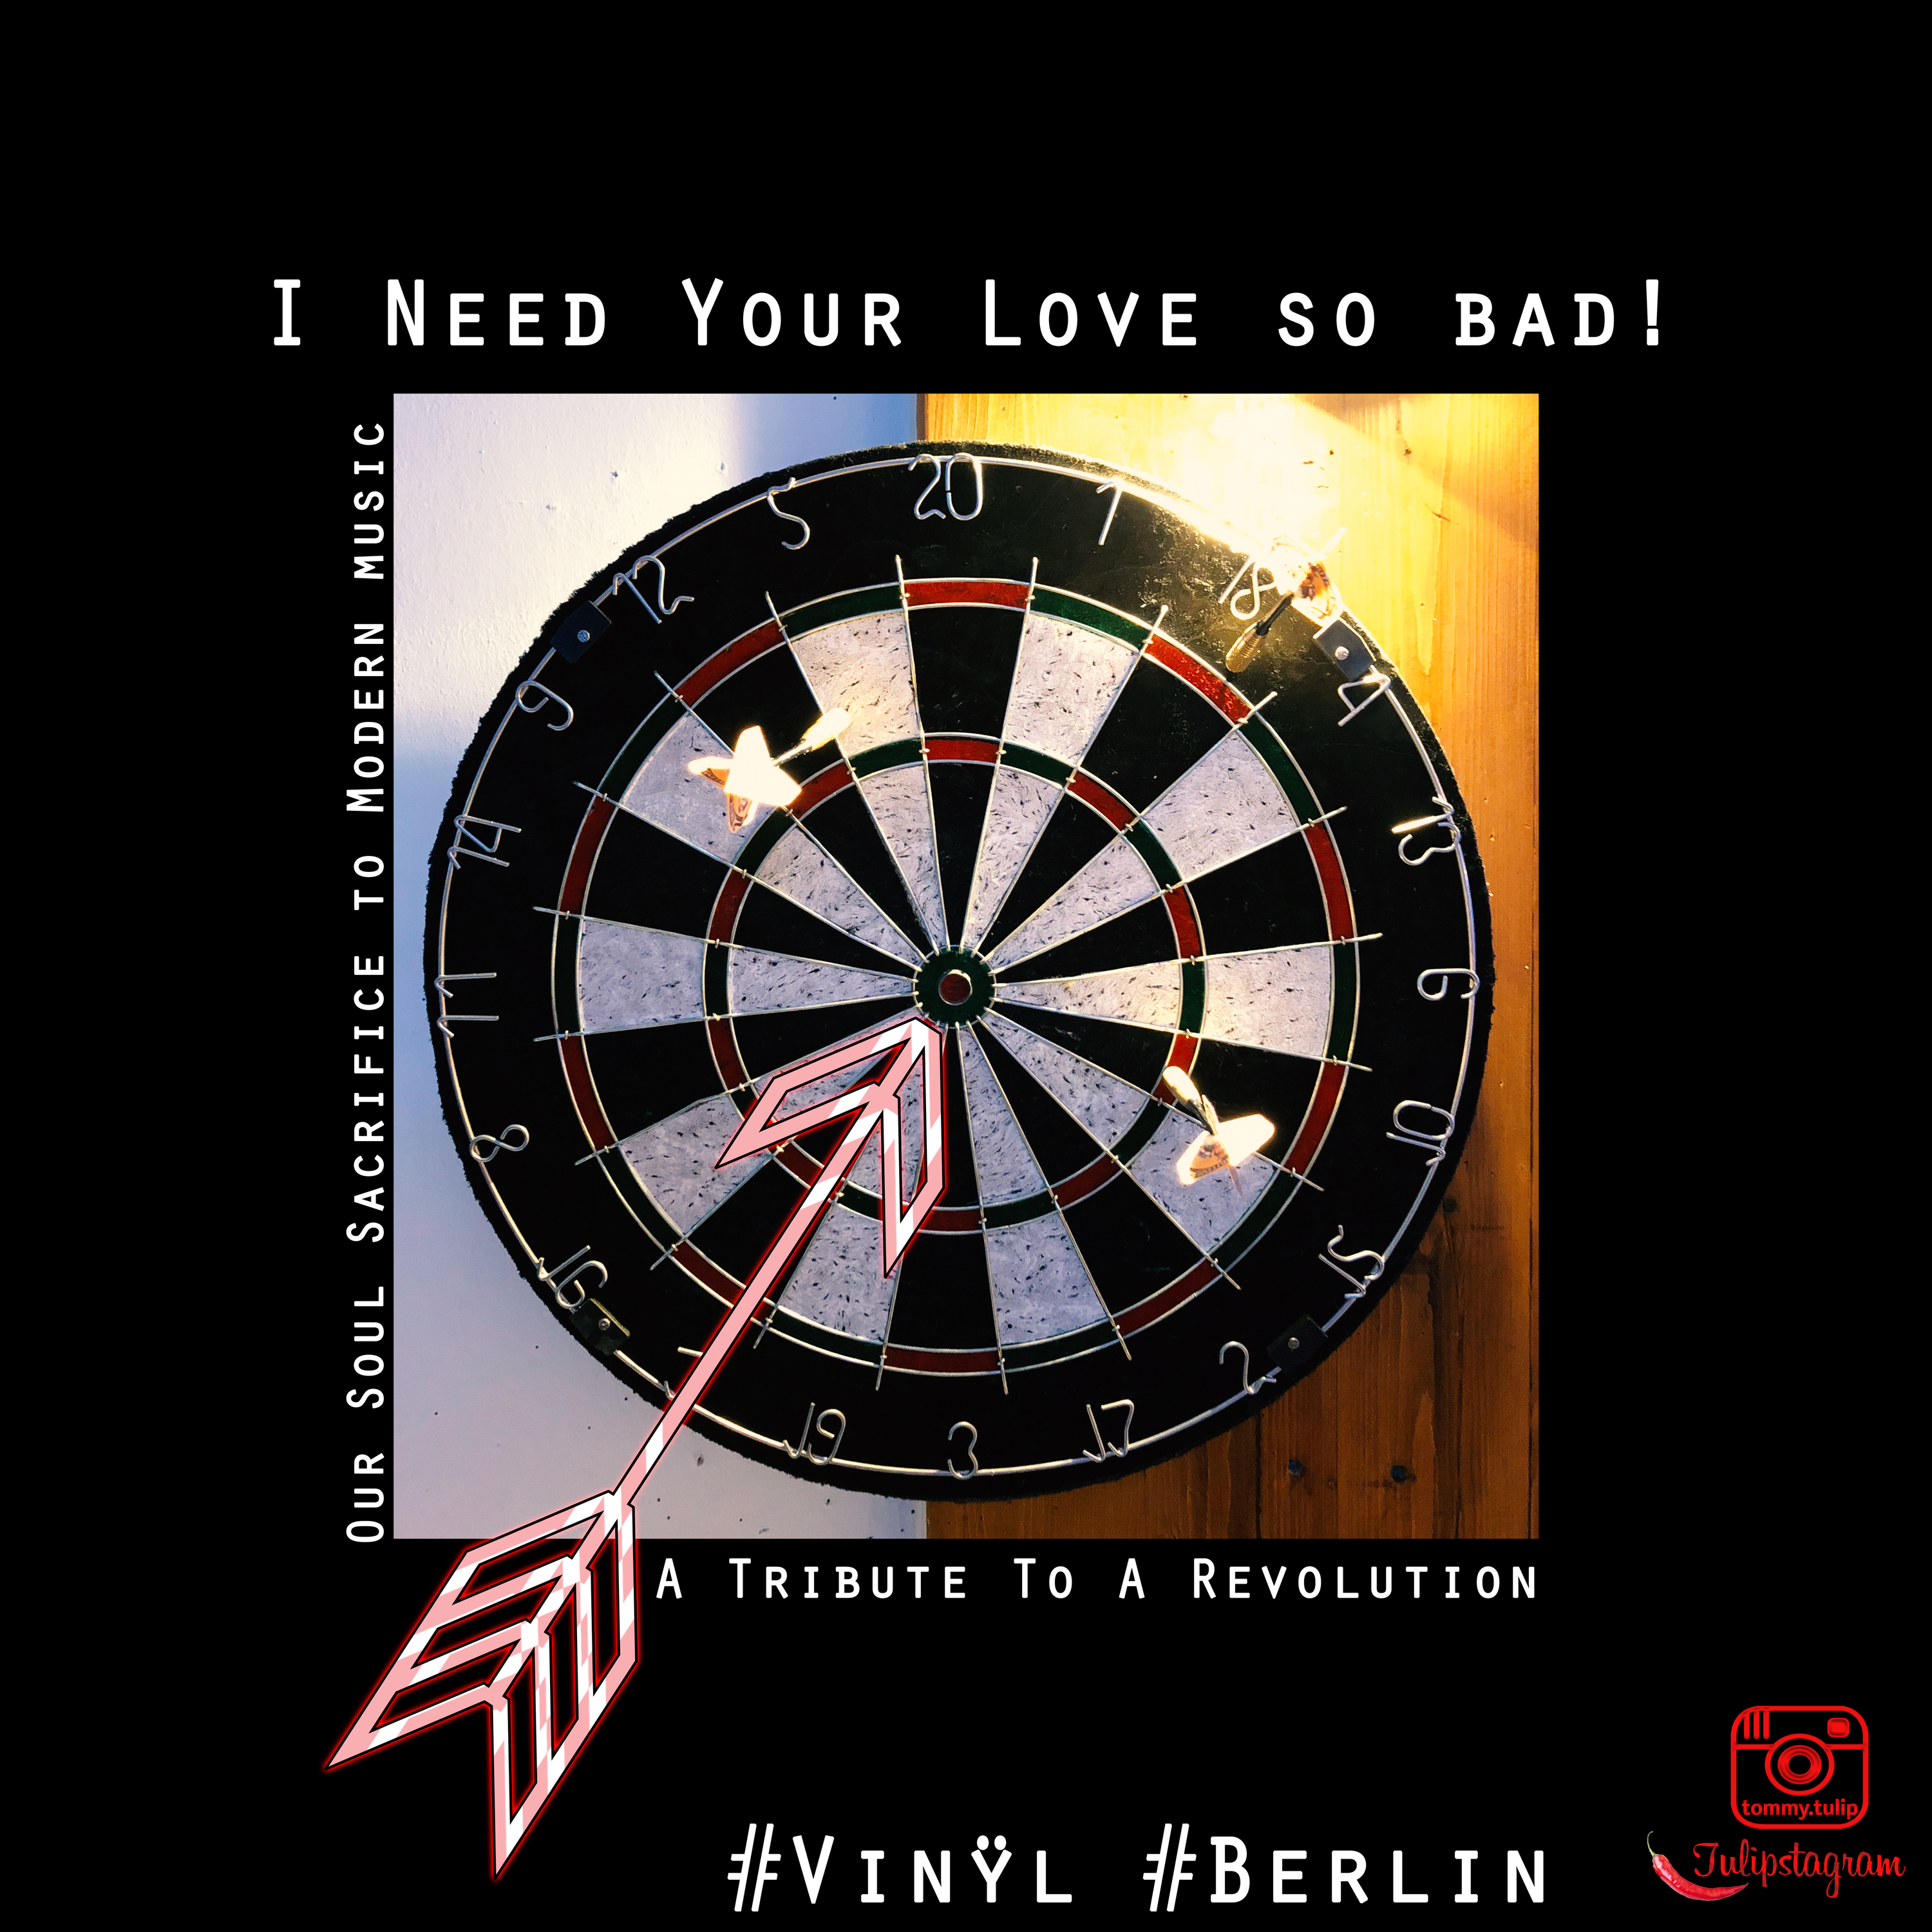 Our Soul Sacrifice To Modern Music: I Need Your Love So Bad! A Tribute To A Revolution. #Vinÿl #Berlin